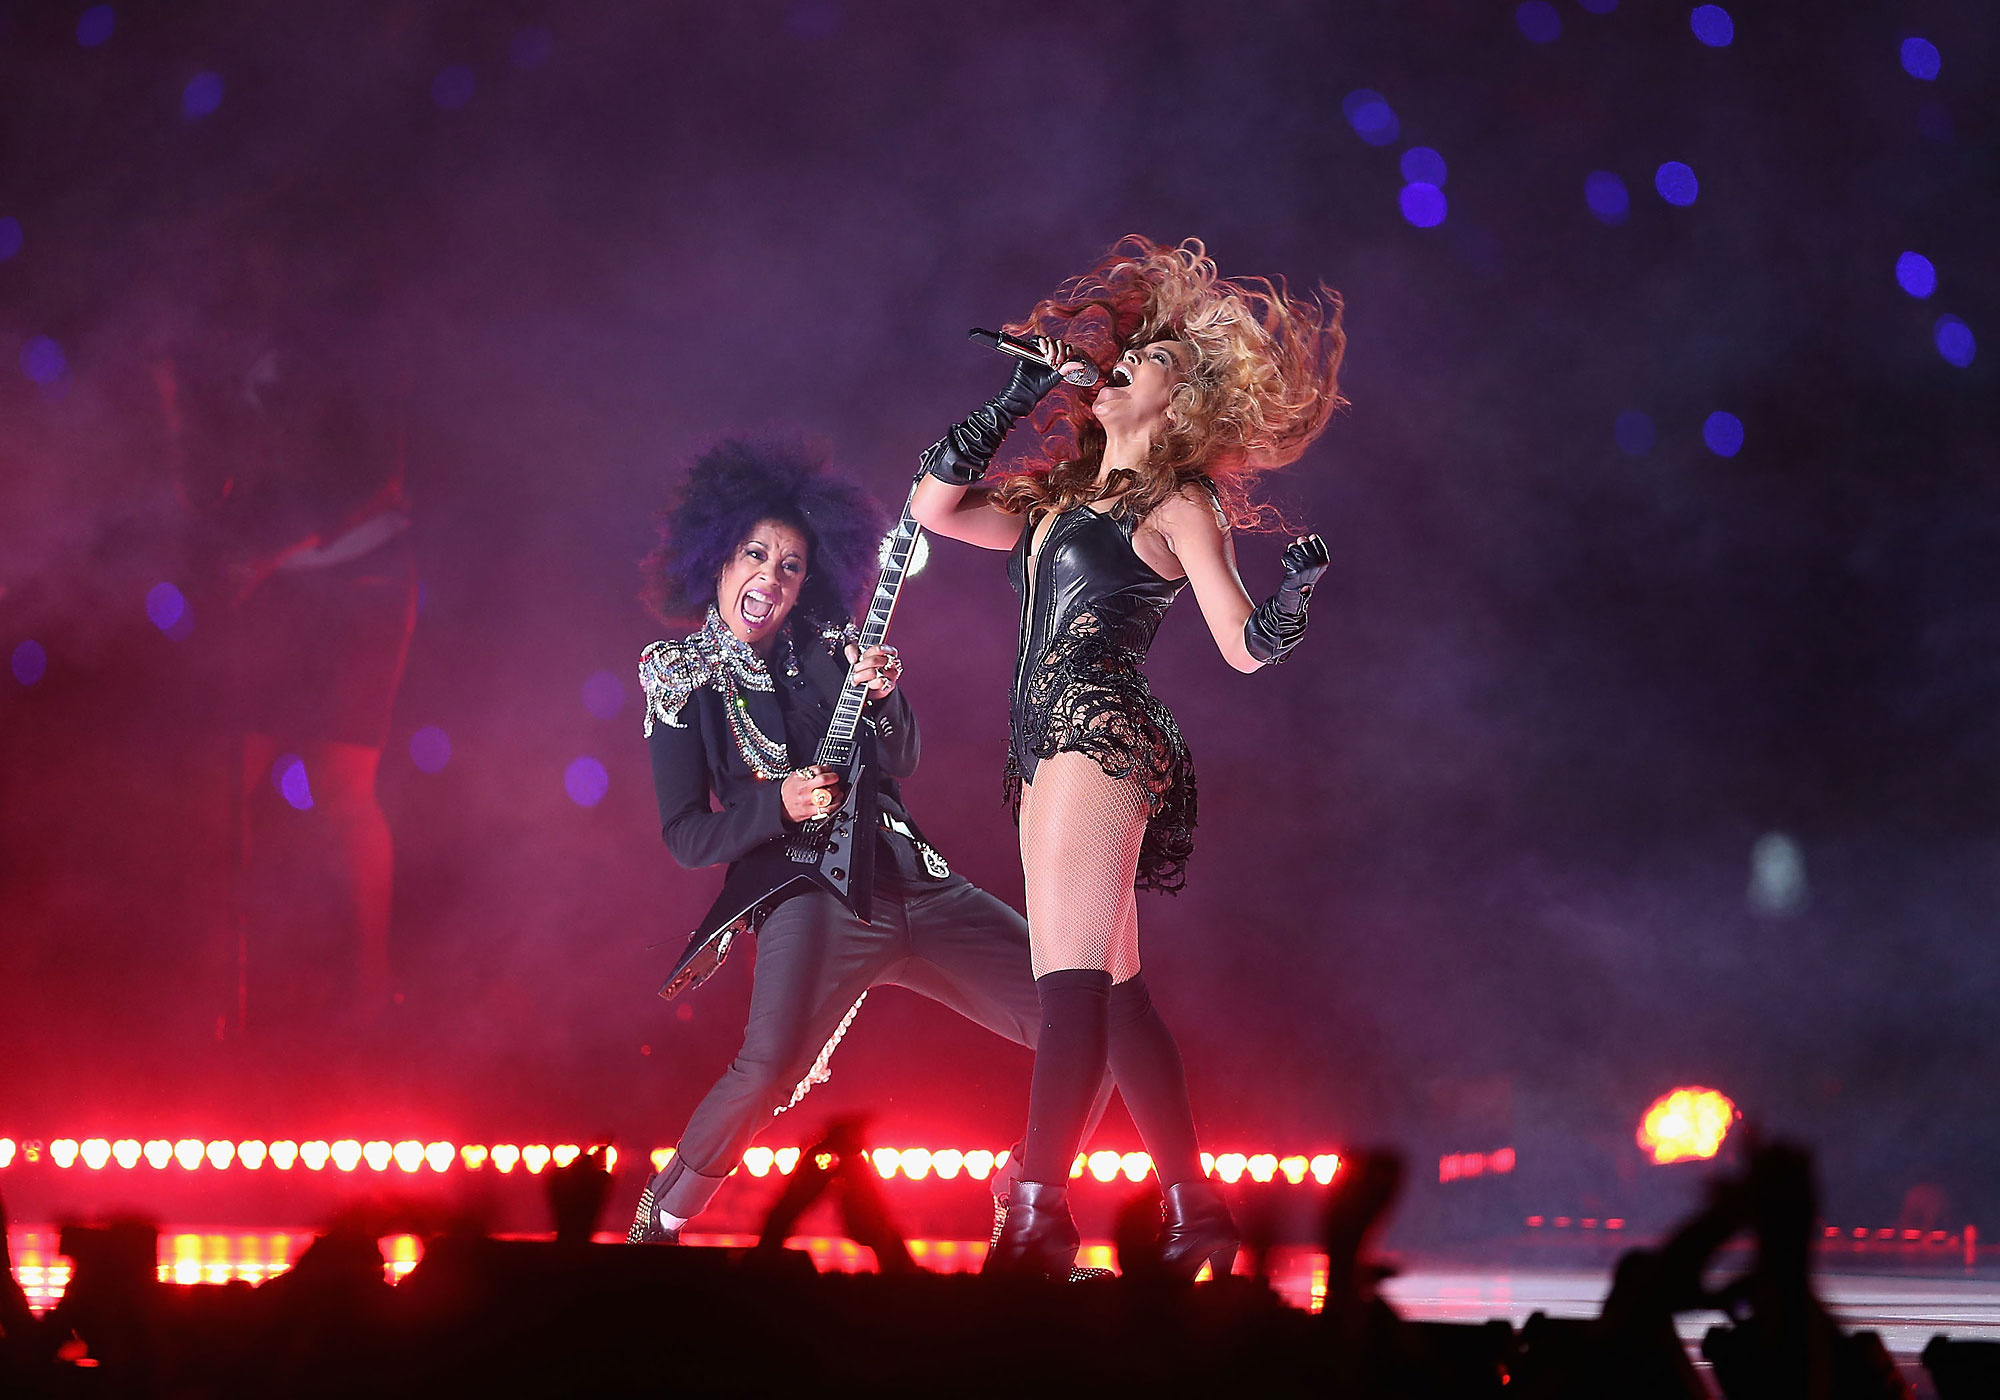 Beyonce and Bibi McGill perform during the Pepsi Super Bowl XLVII Halftime Show at the Mercedes-Benz Superdome on February 3, 2013 in New Orleans, Louisiana.